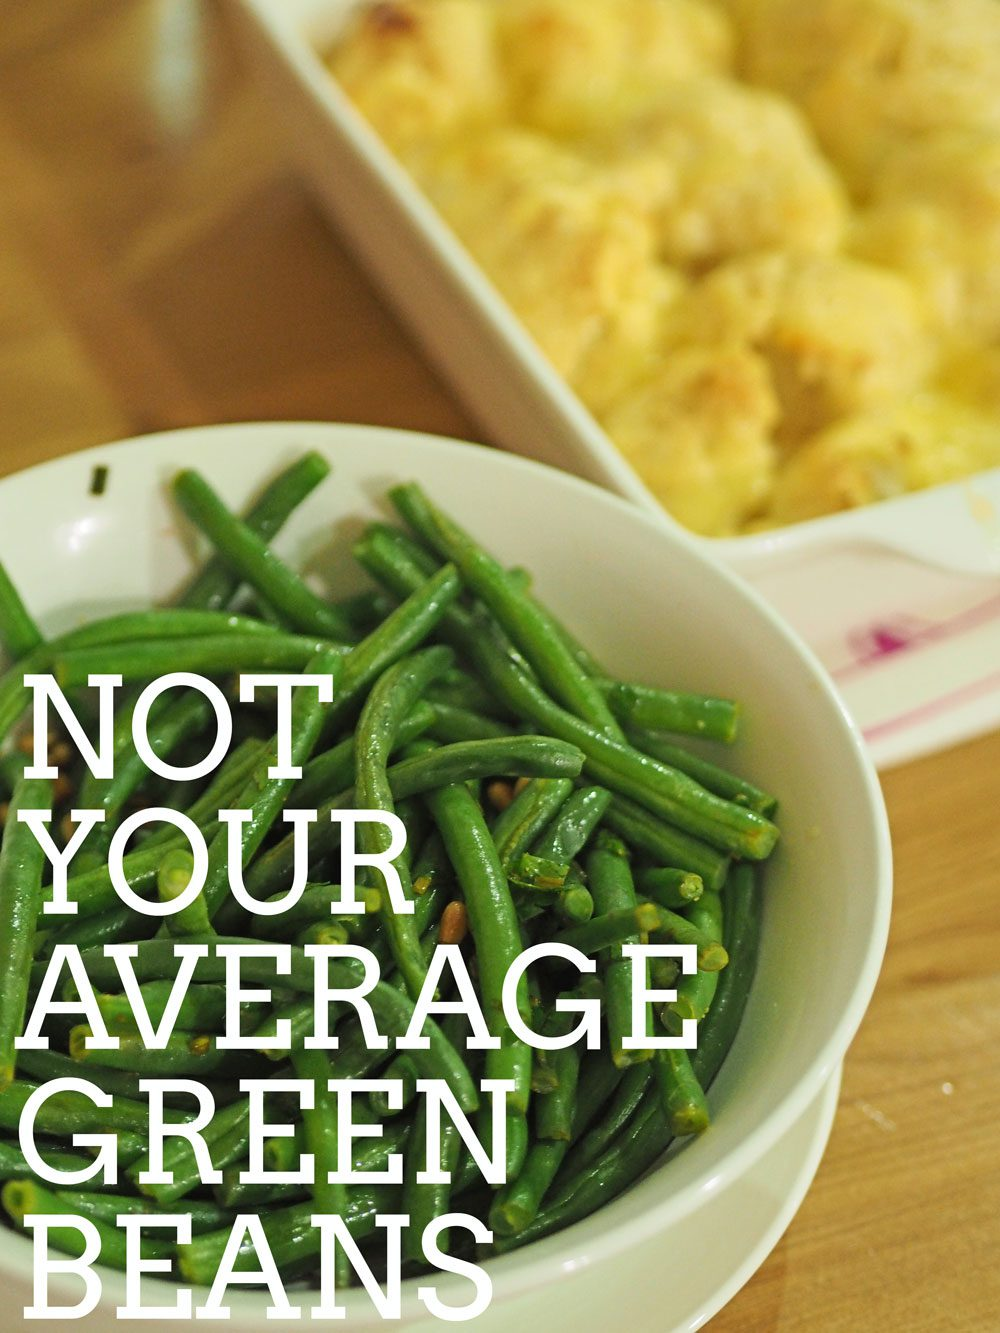 Delicious green beans with lemon and herbs